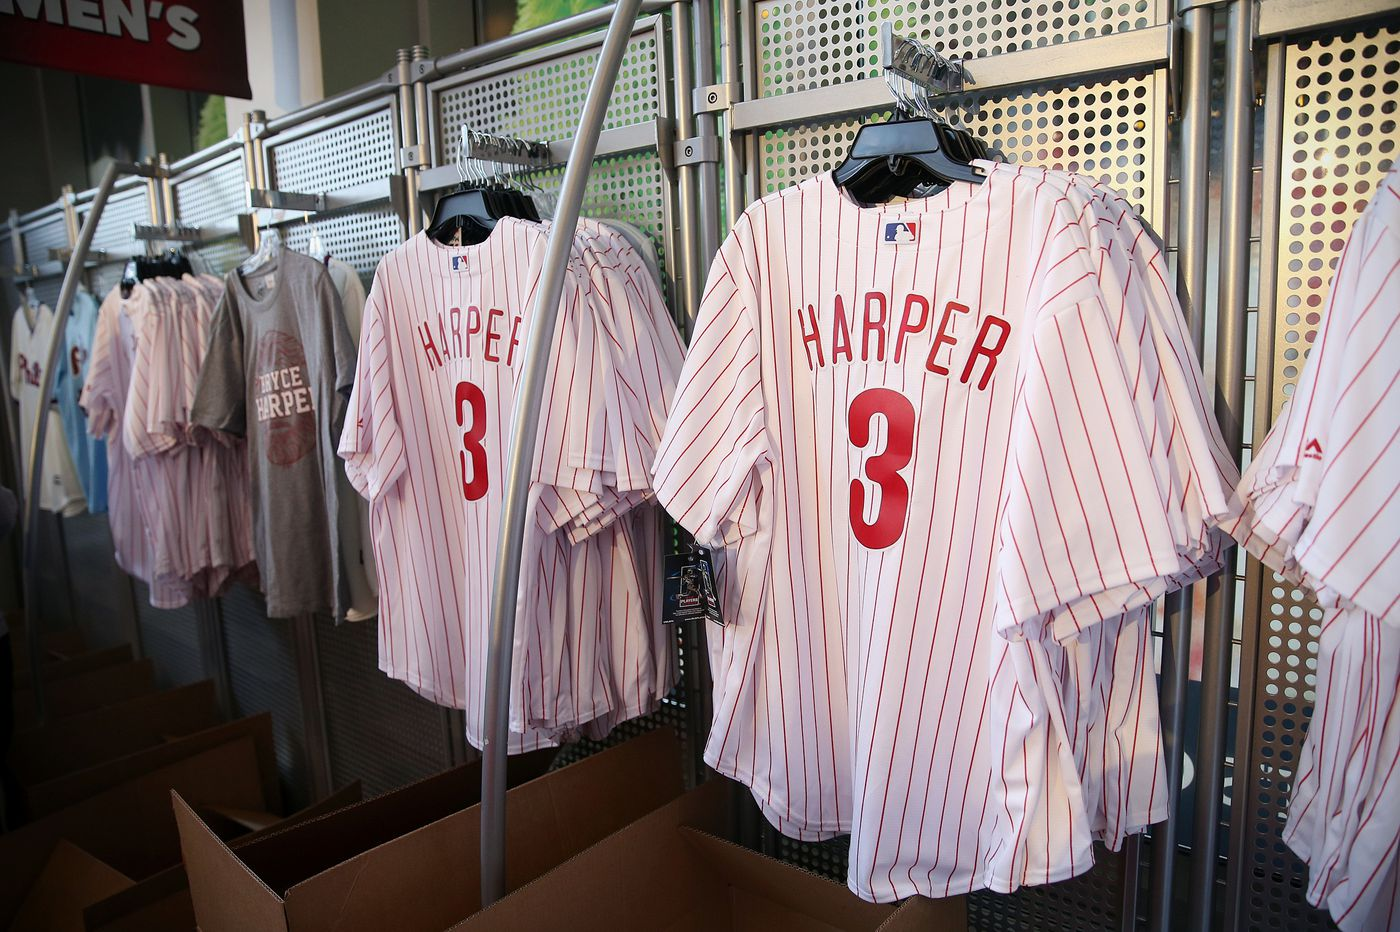 9c39fea98 Bryce Harper Phillies jersey sales break record in first 24 hours